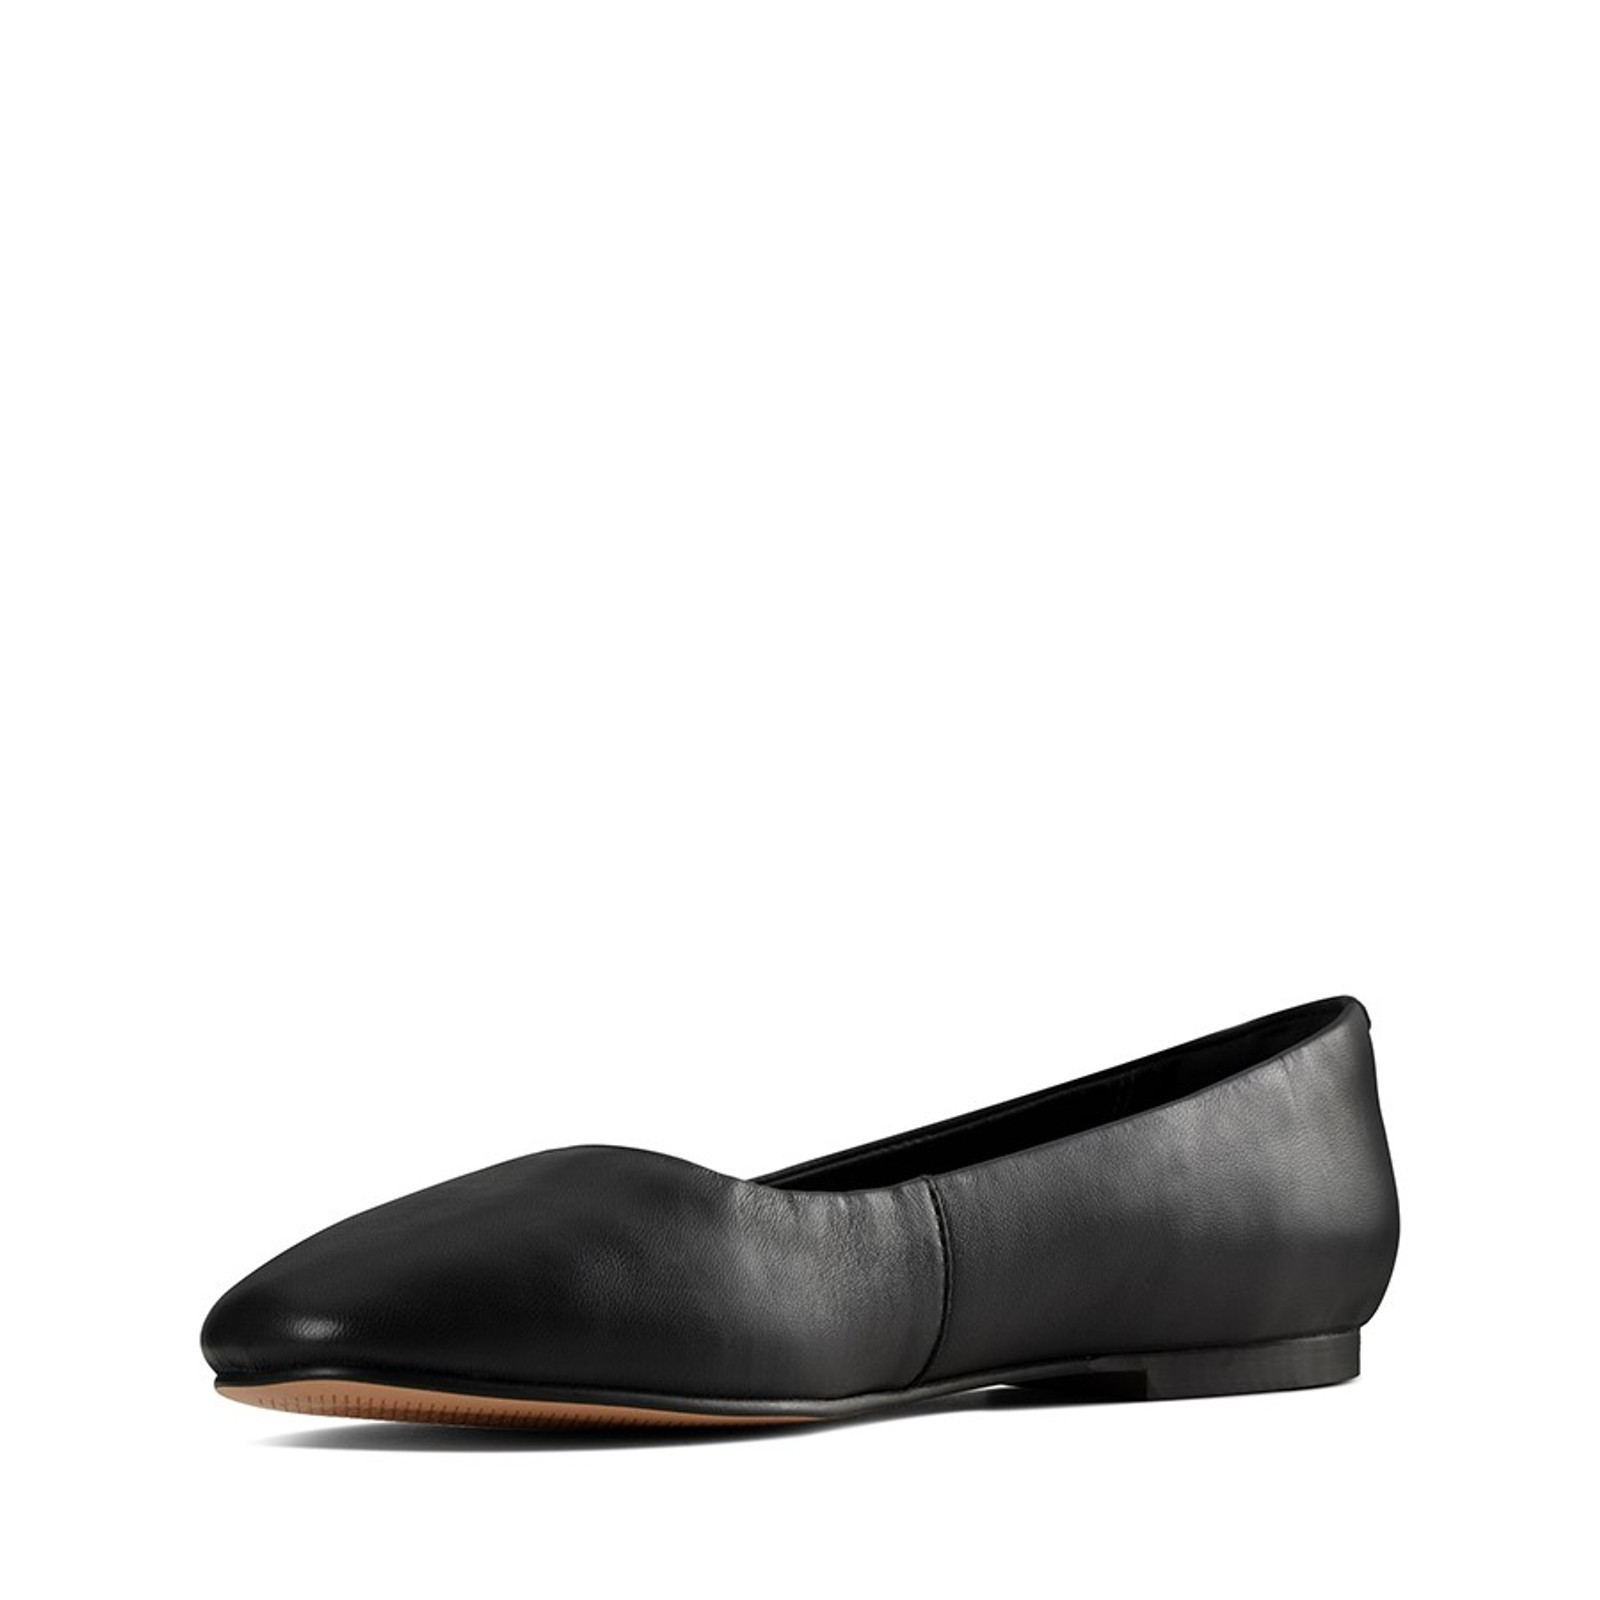 Clarks Womens PURE2 PUMP Black Leather